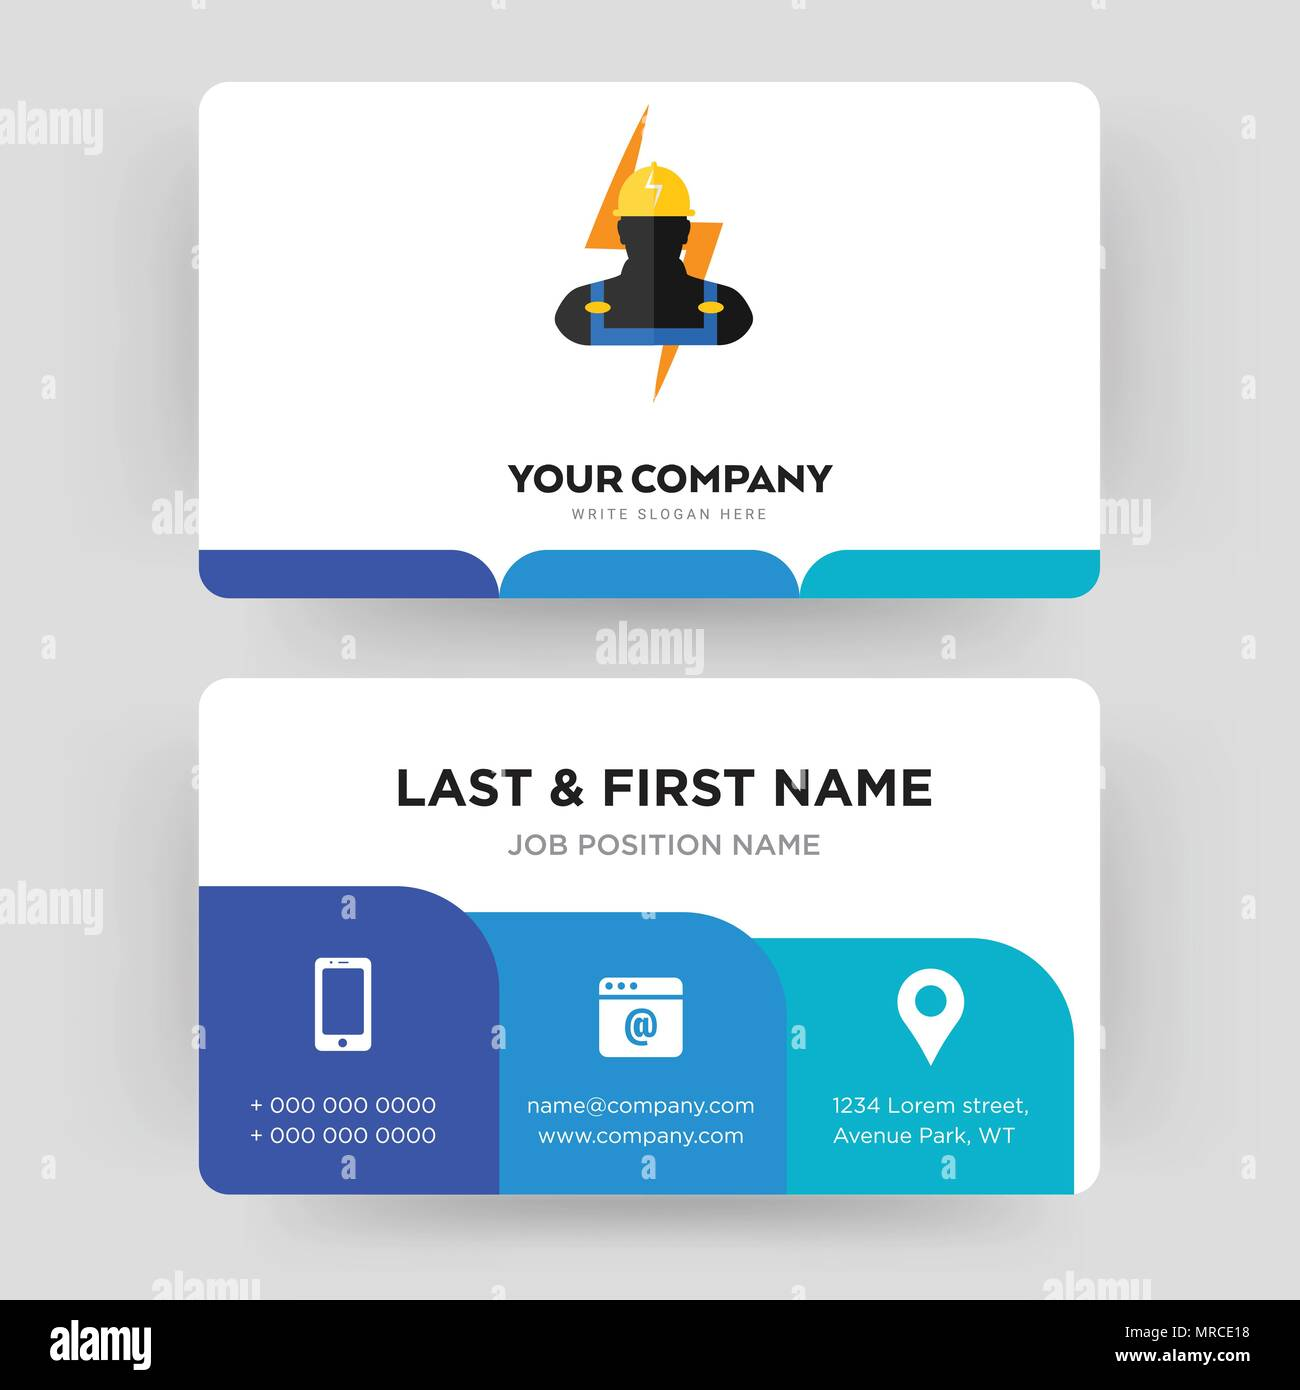 Electrician business card design template visiting for your electrician business card design template visiting for your company modern creative and clean identity card vector reheart Images